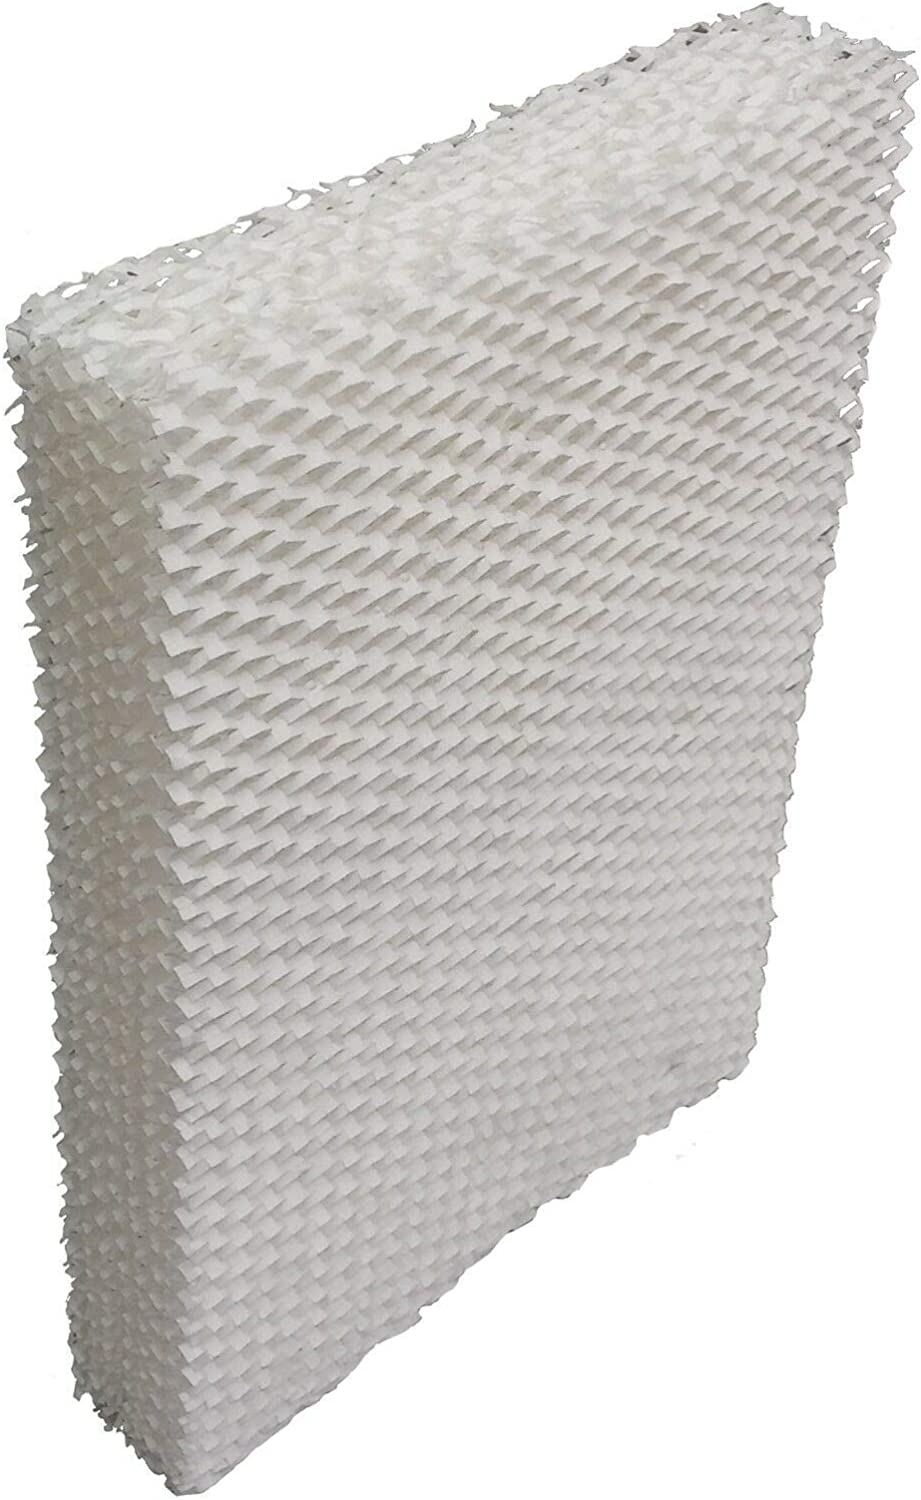 Replacement Paper Dealing full price reduction Wick Humidifier Filter Limited time sale 7.5